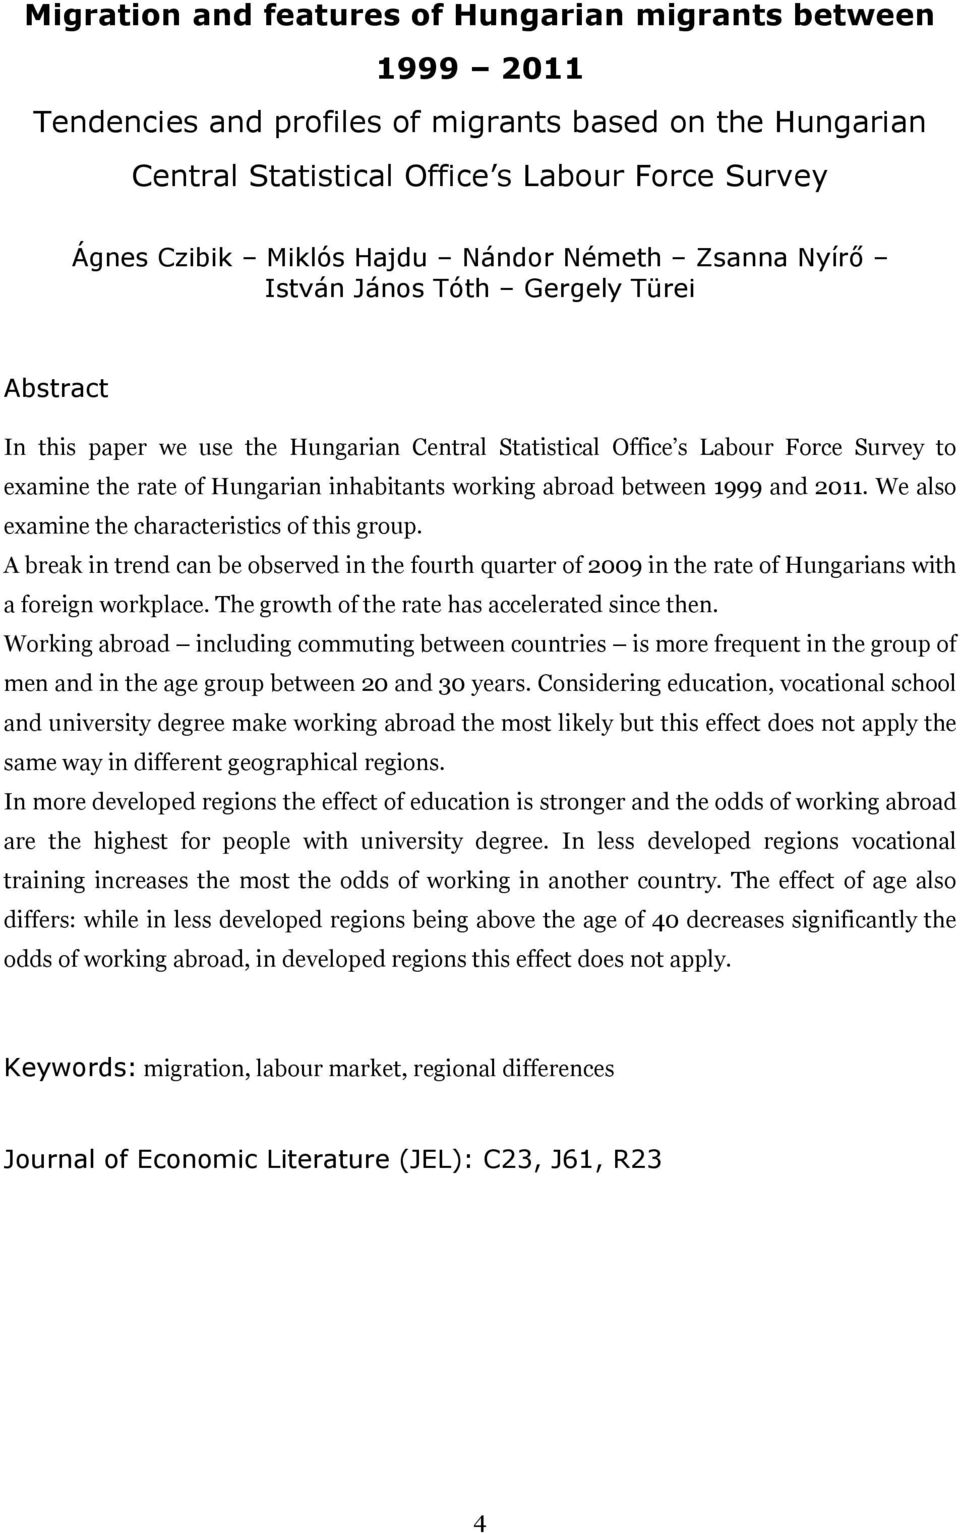 working abroad between 1999 and 2011. We also examine the characteristics of this group.